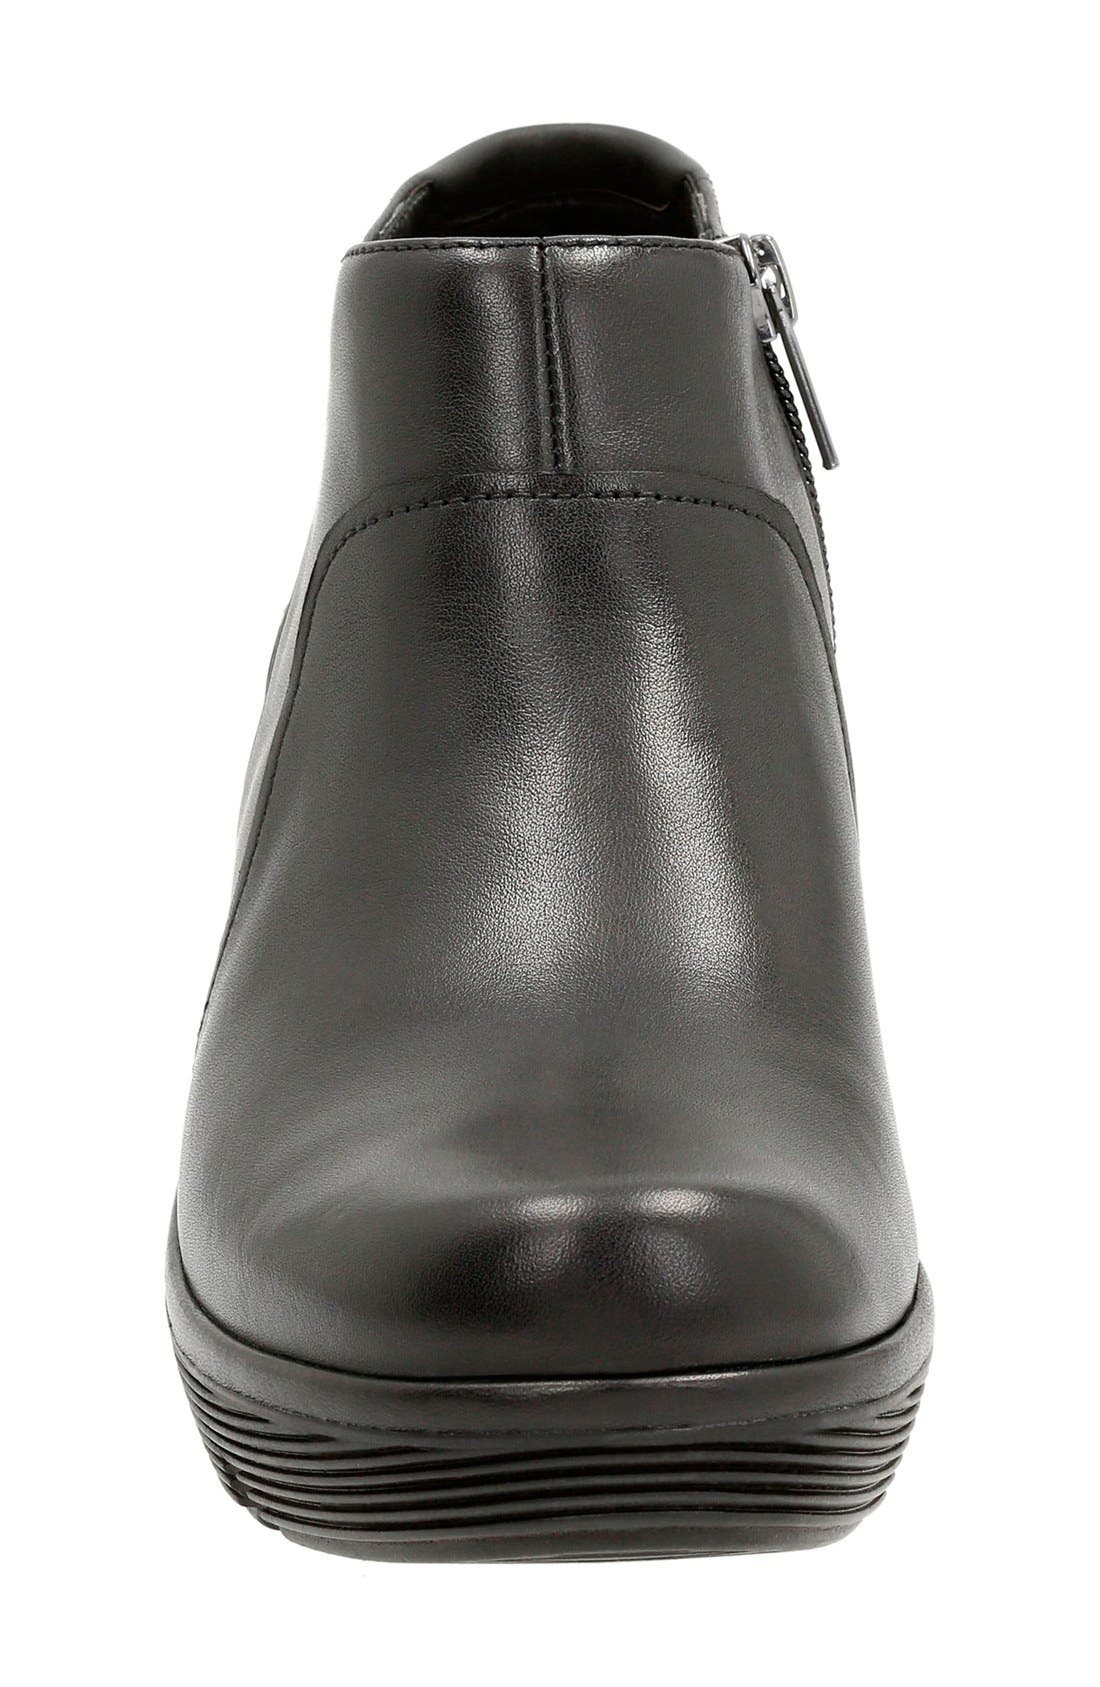 'Clarene Sun' Wedge Boot,                             Alternate thumbnail 3, color,                             Black Leather